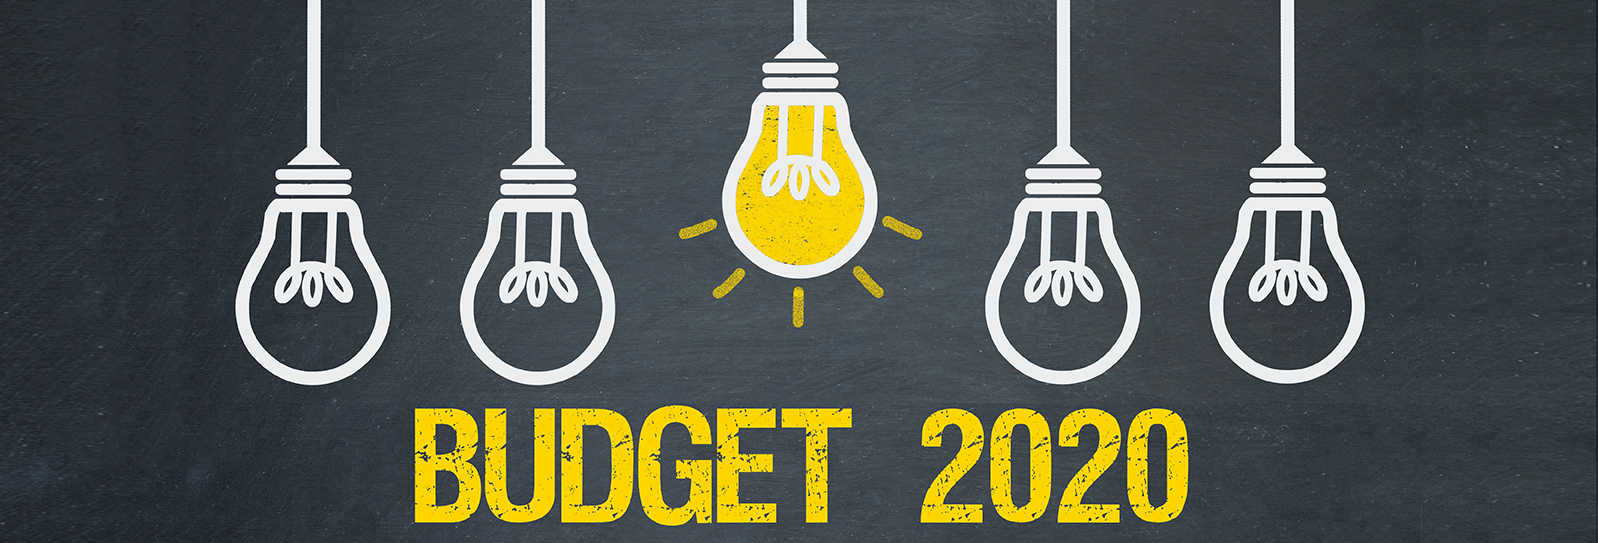 ipublish 2020 budget